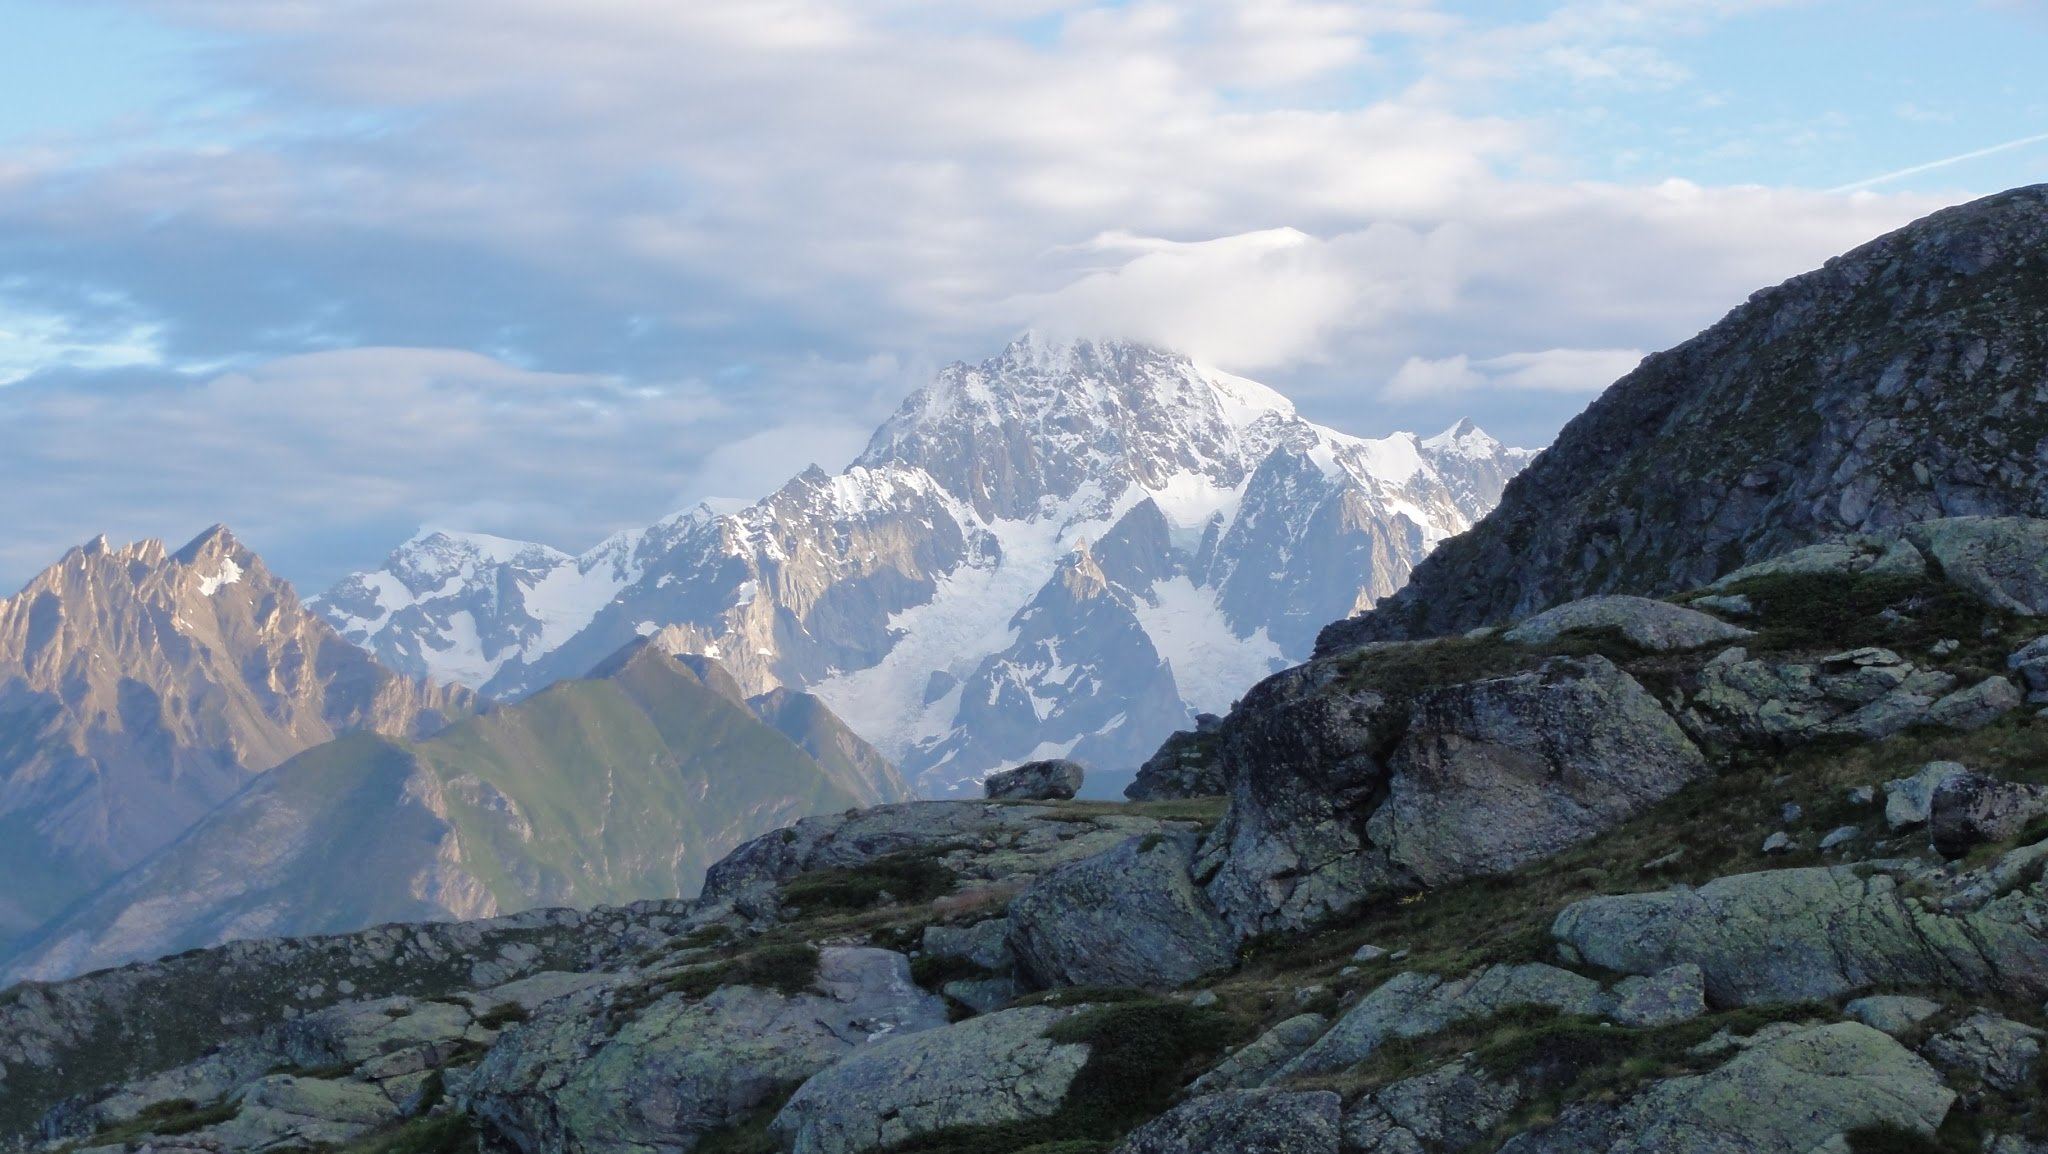 South face of Mont Blanc from Deffeyes' hut, Aosta valley, Italia